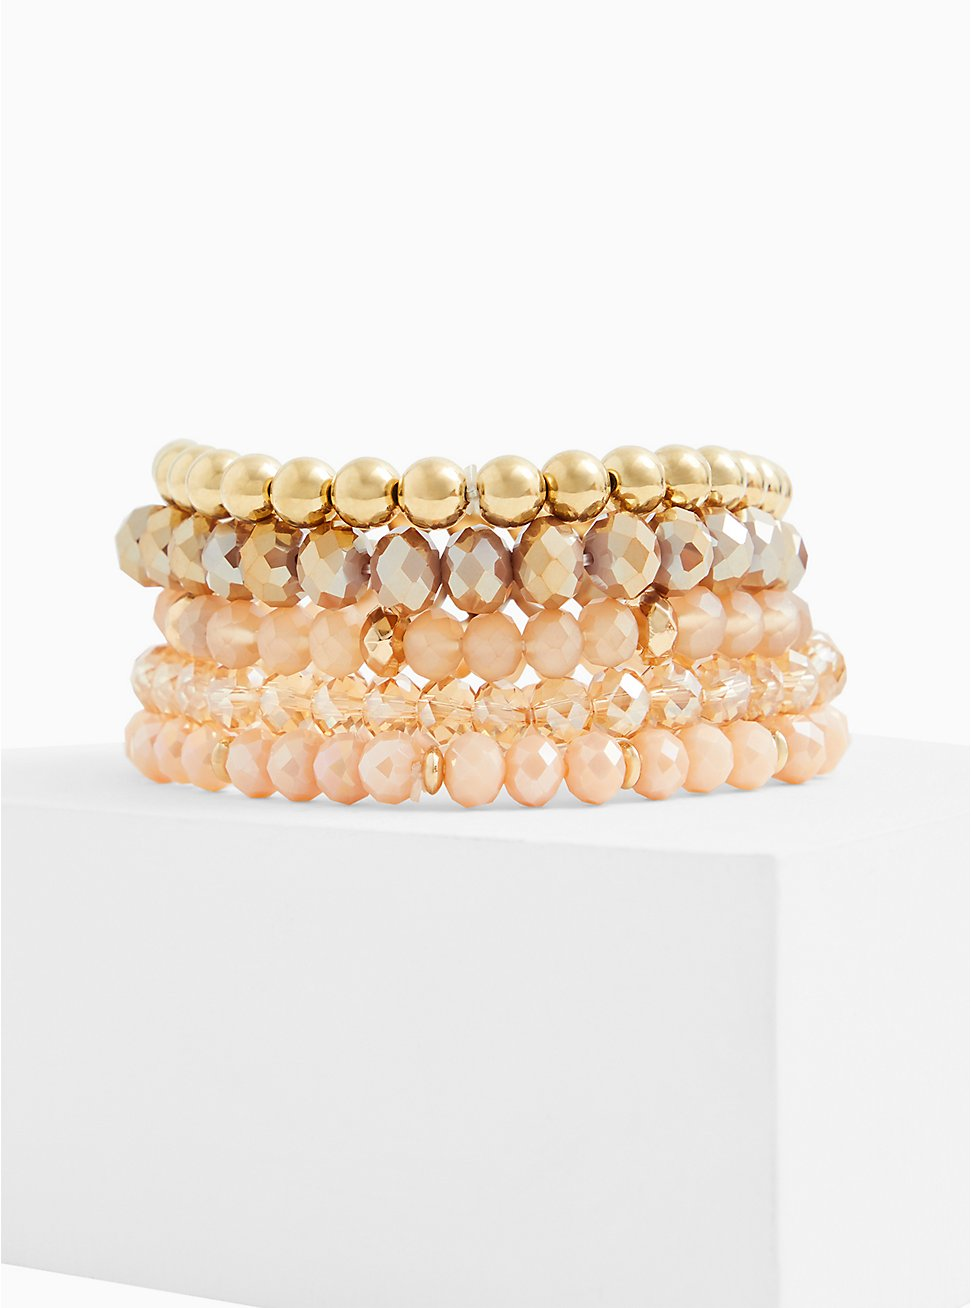 Gold-Tone Bead Stretch Bracelet Set - Set of 5, GOLD, hi-res